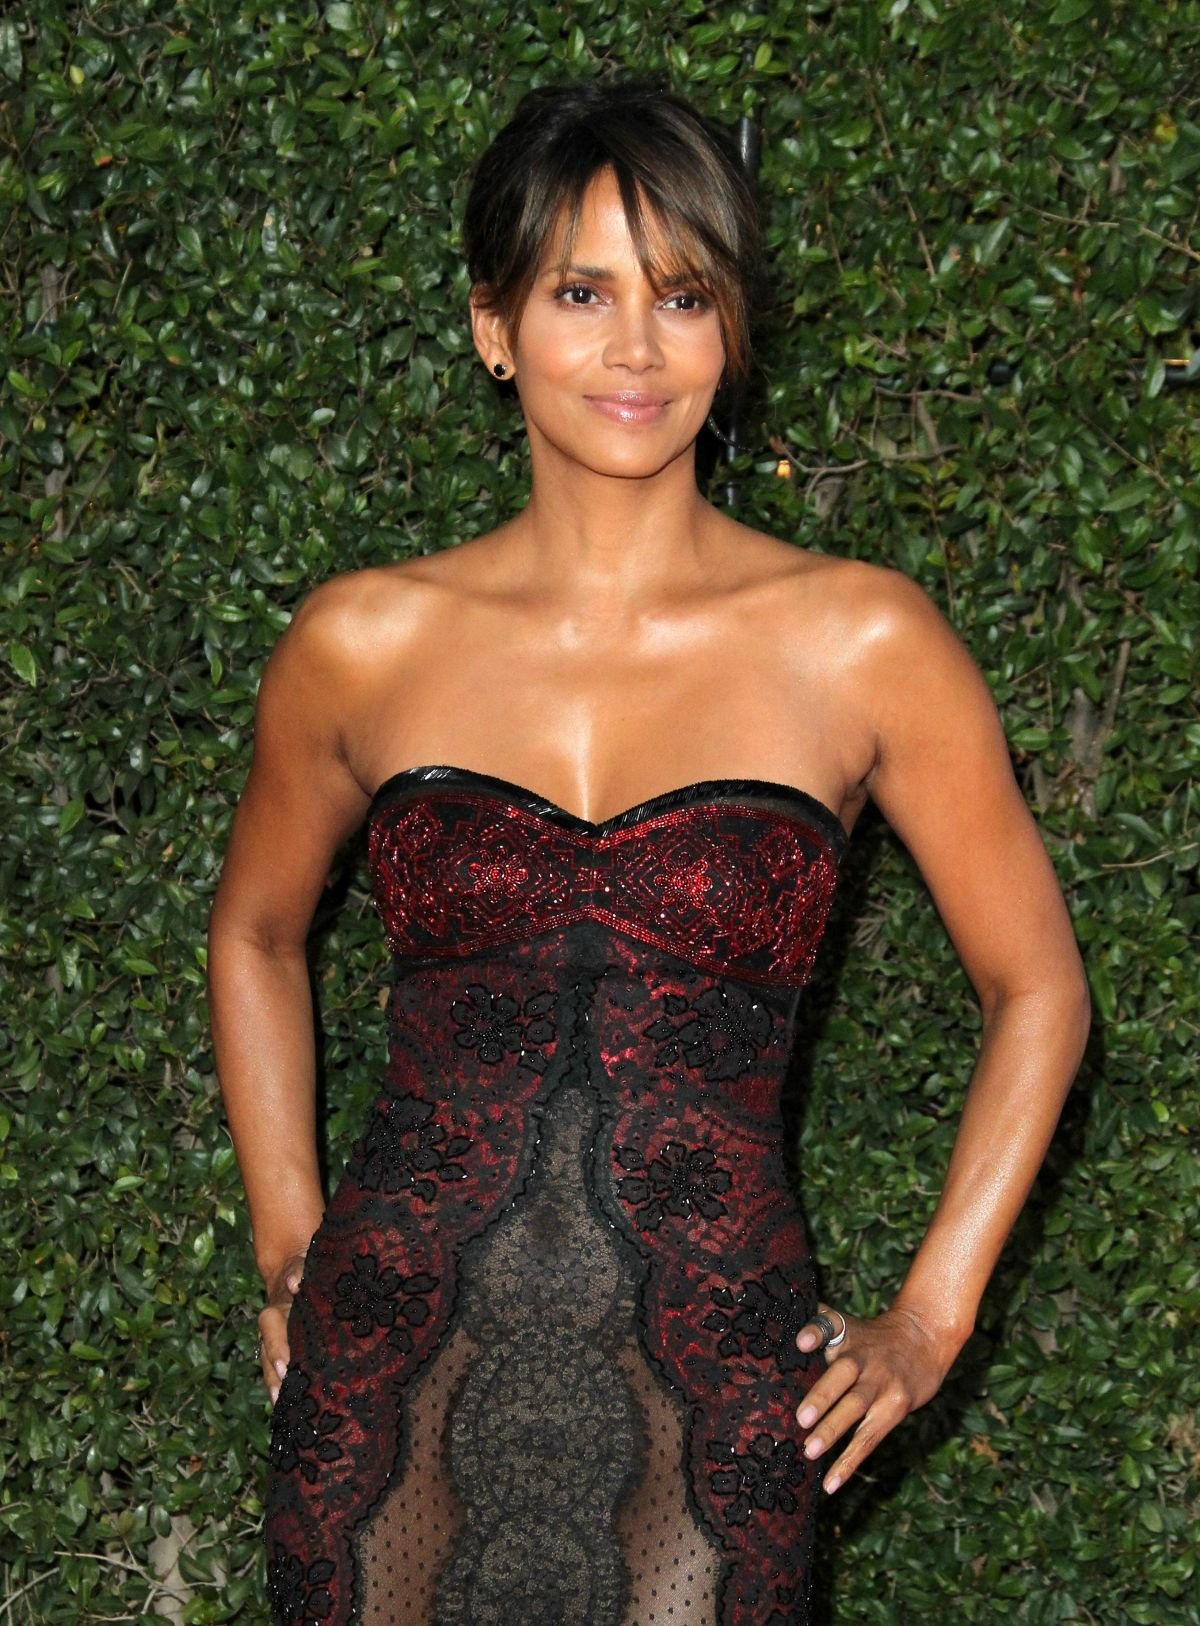 HALLE BERRY at 49th Naacp Image Awards in Pasadena 01/14 ... Halle Berry